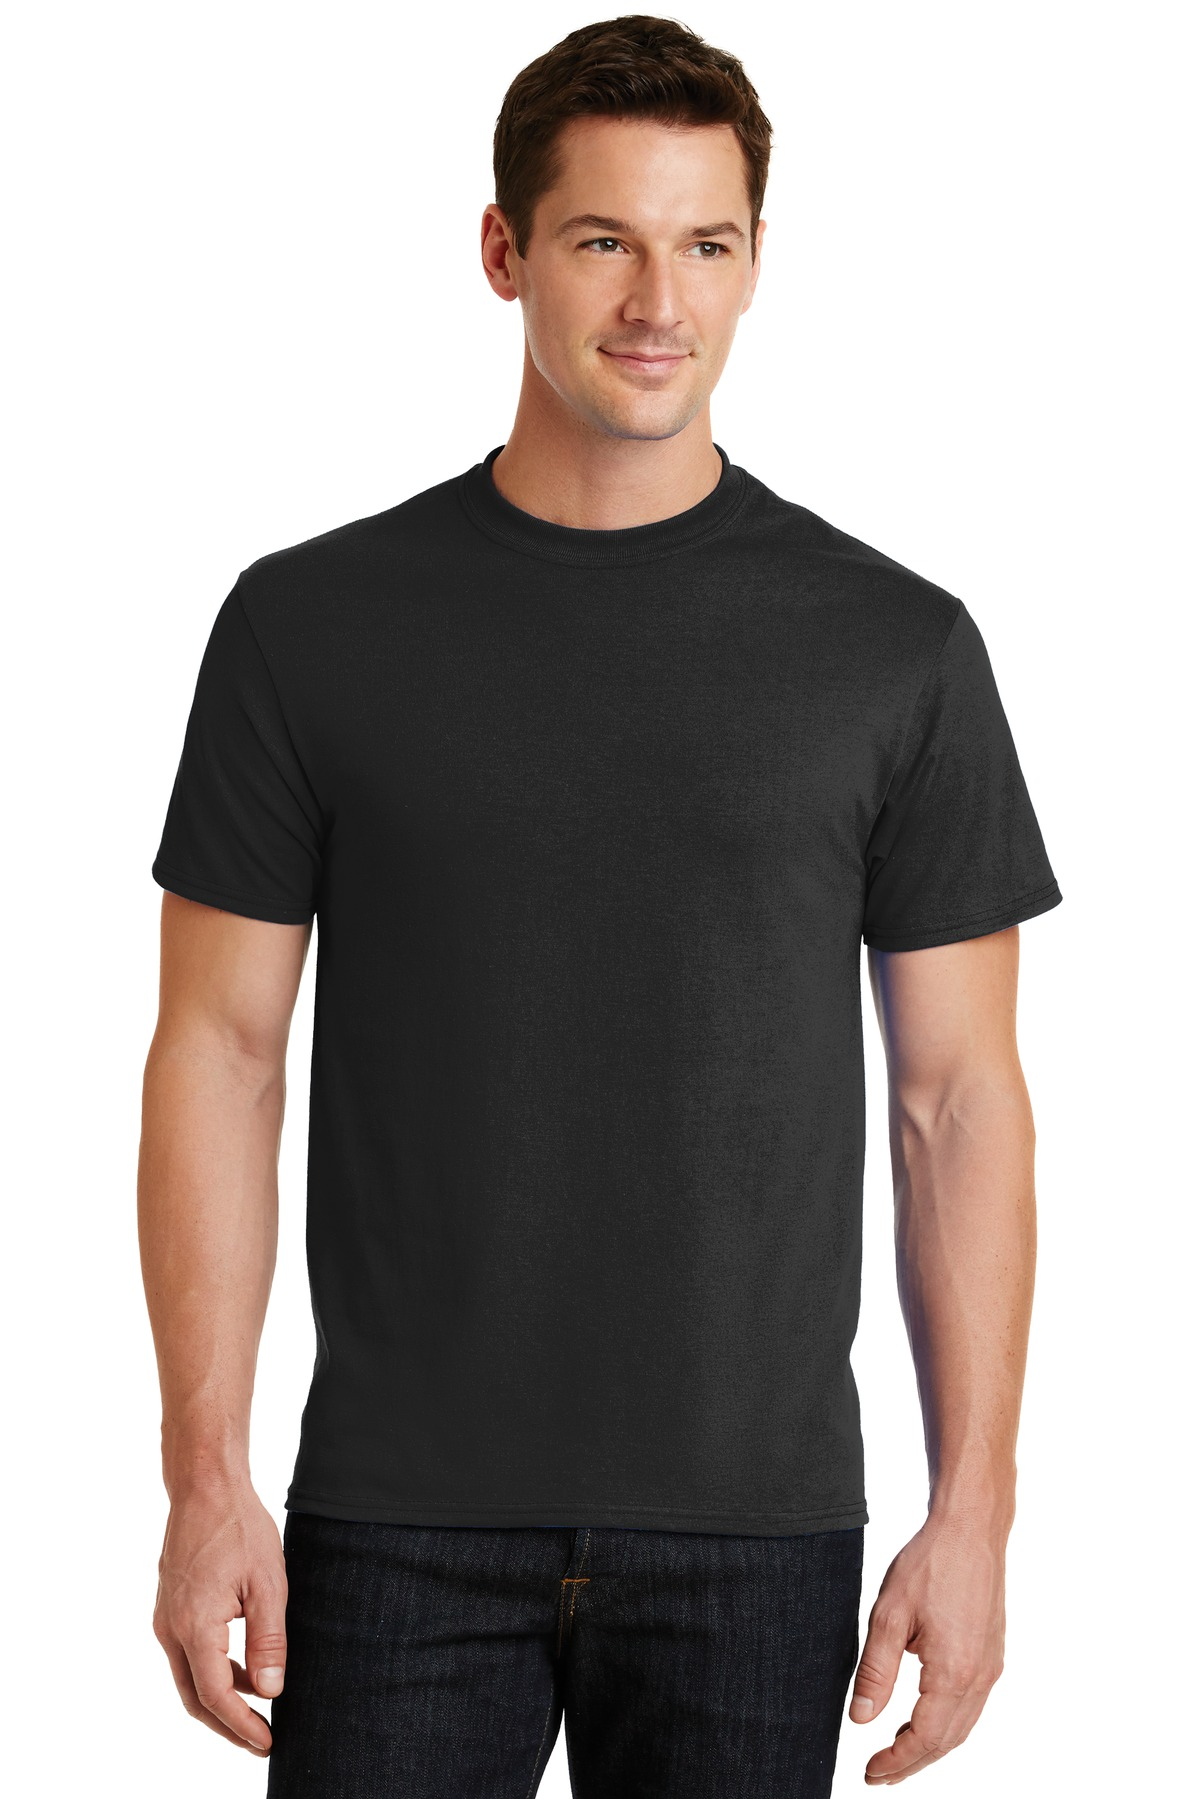 FOH – Men's / Unisex Blank T-shirt: Core Blend Tee. PC55 – Black